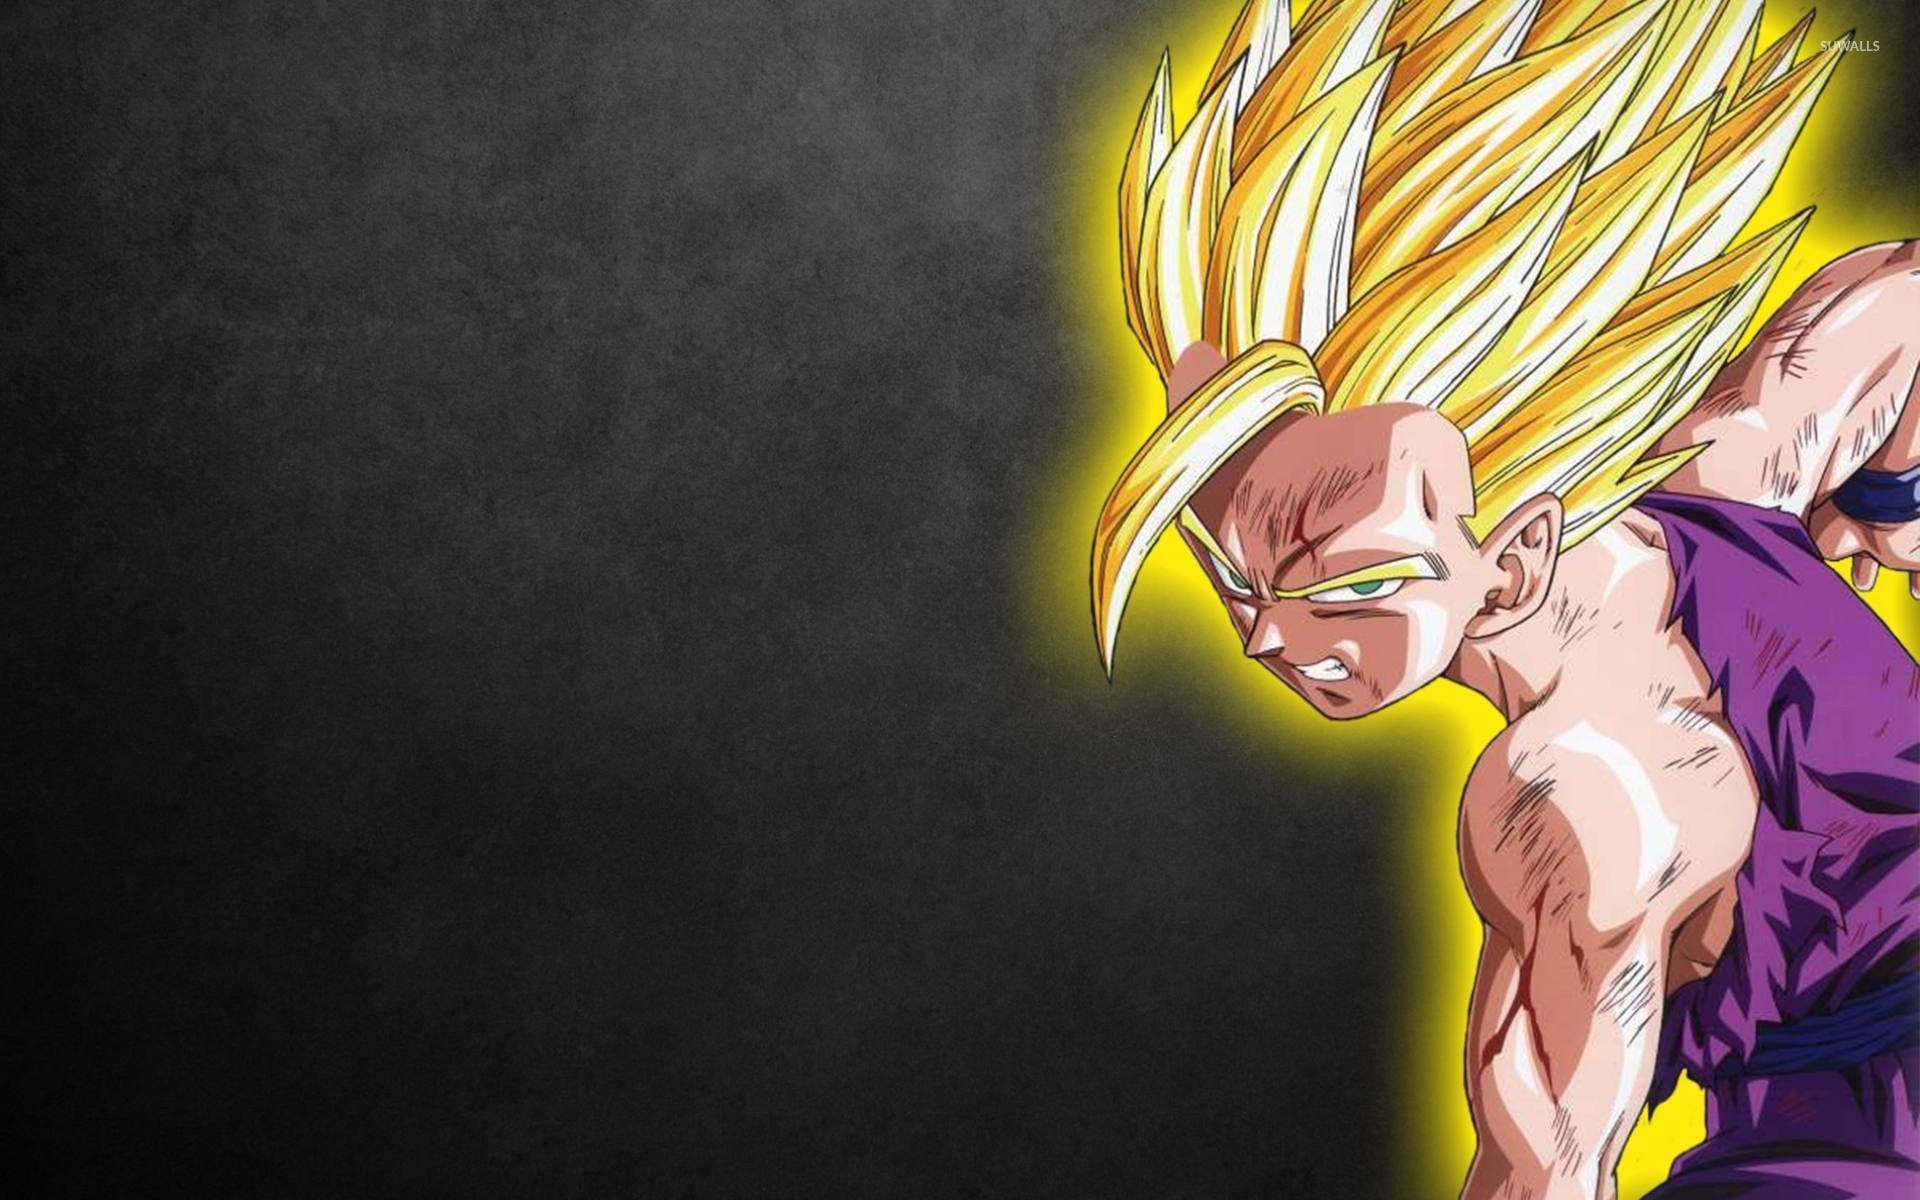 Goku - Dragon Ball Z [2] wallpaper - Anime wallpapers - #16661